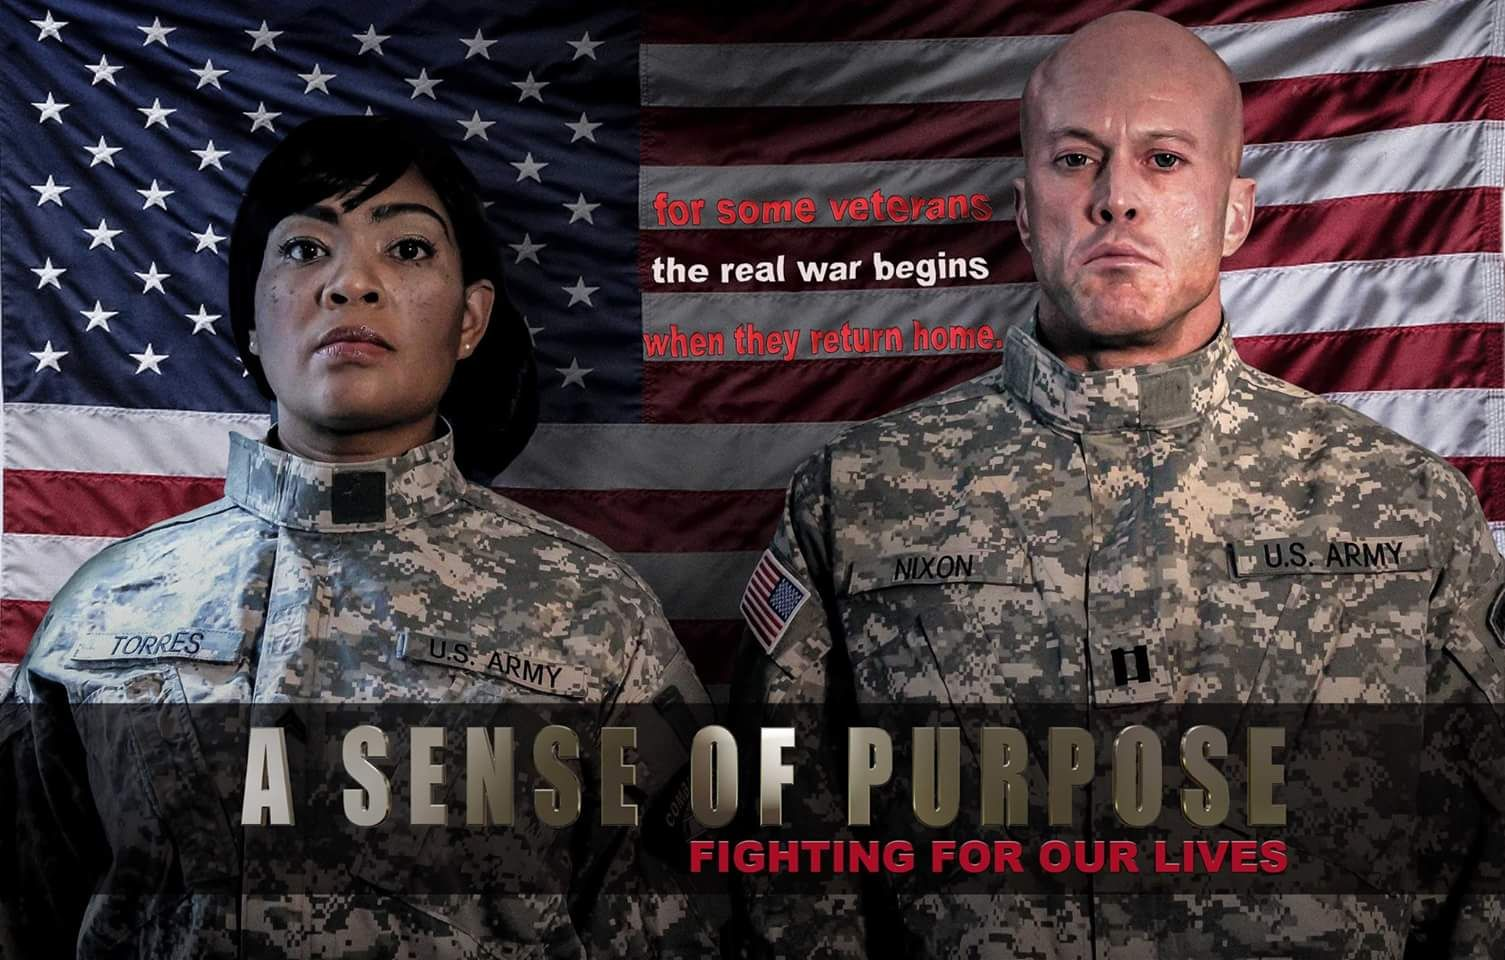 A Sense of Purpose Fighting For Our Lives - Tamara Woods & John Quinlan by Jillian Bullock #JohnQuinlan #JillianBullock #ASenseOfPurpose #Movie